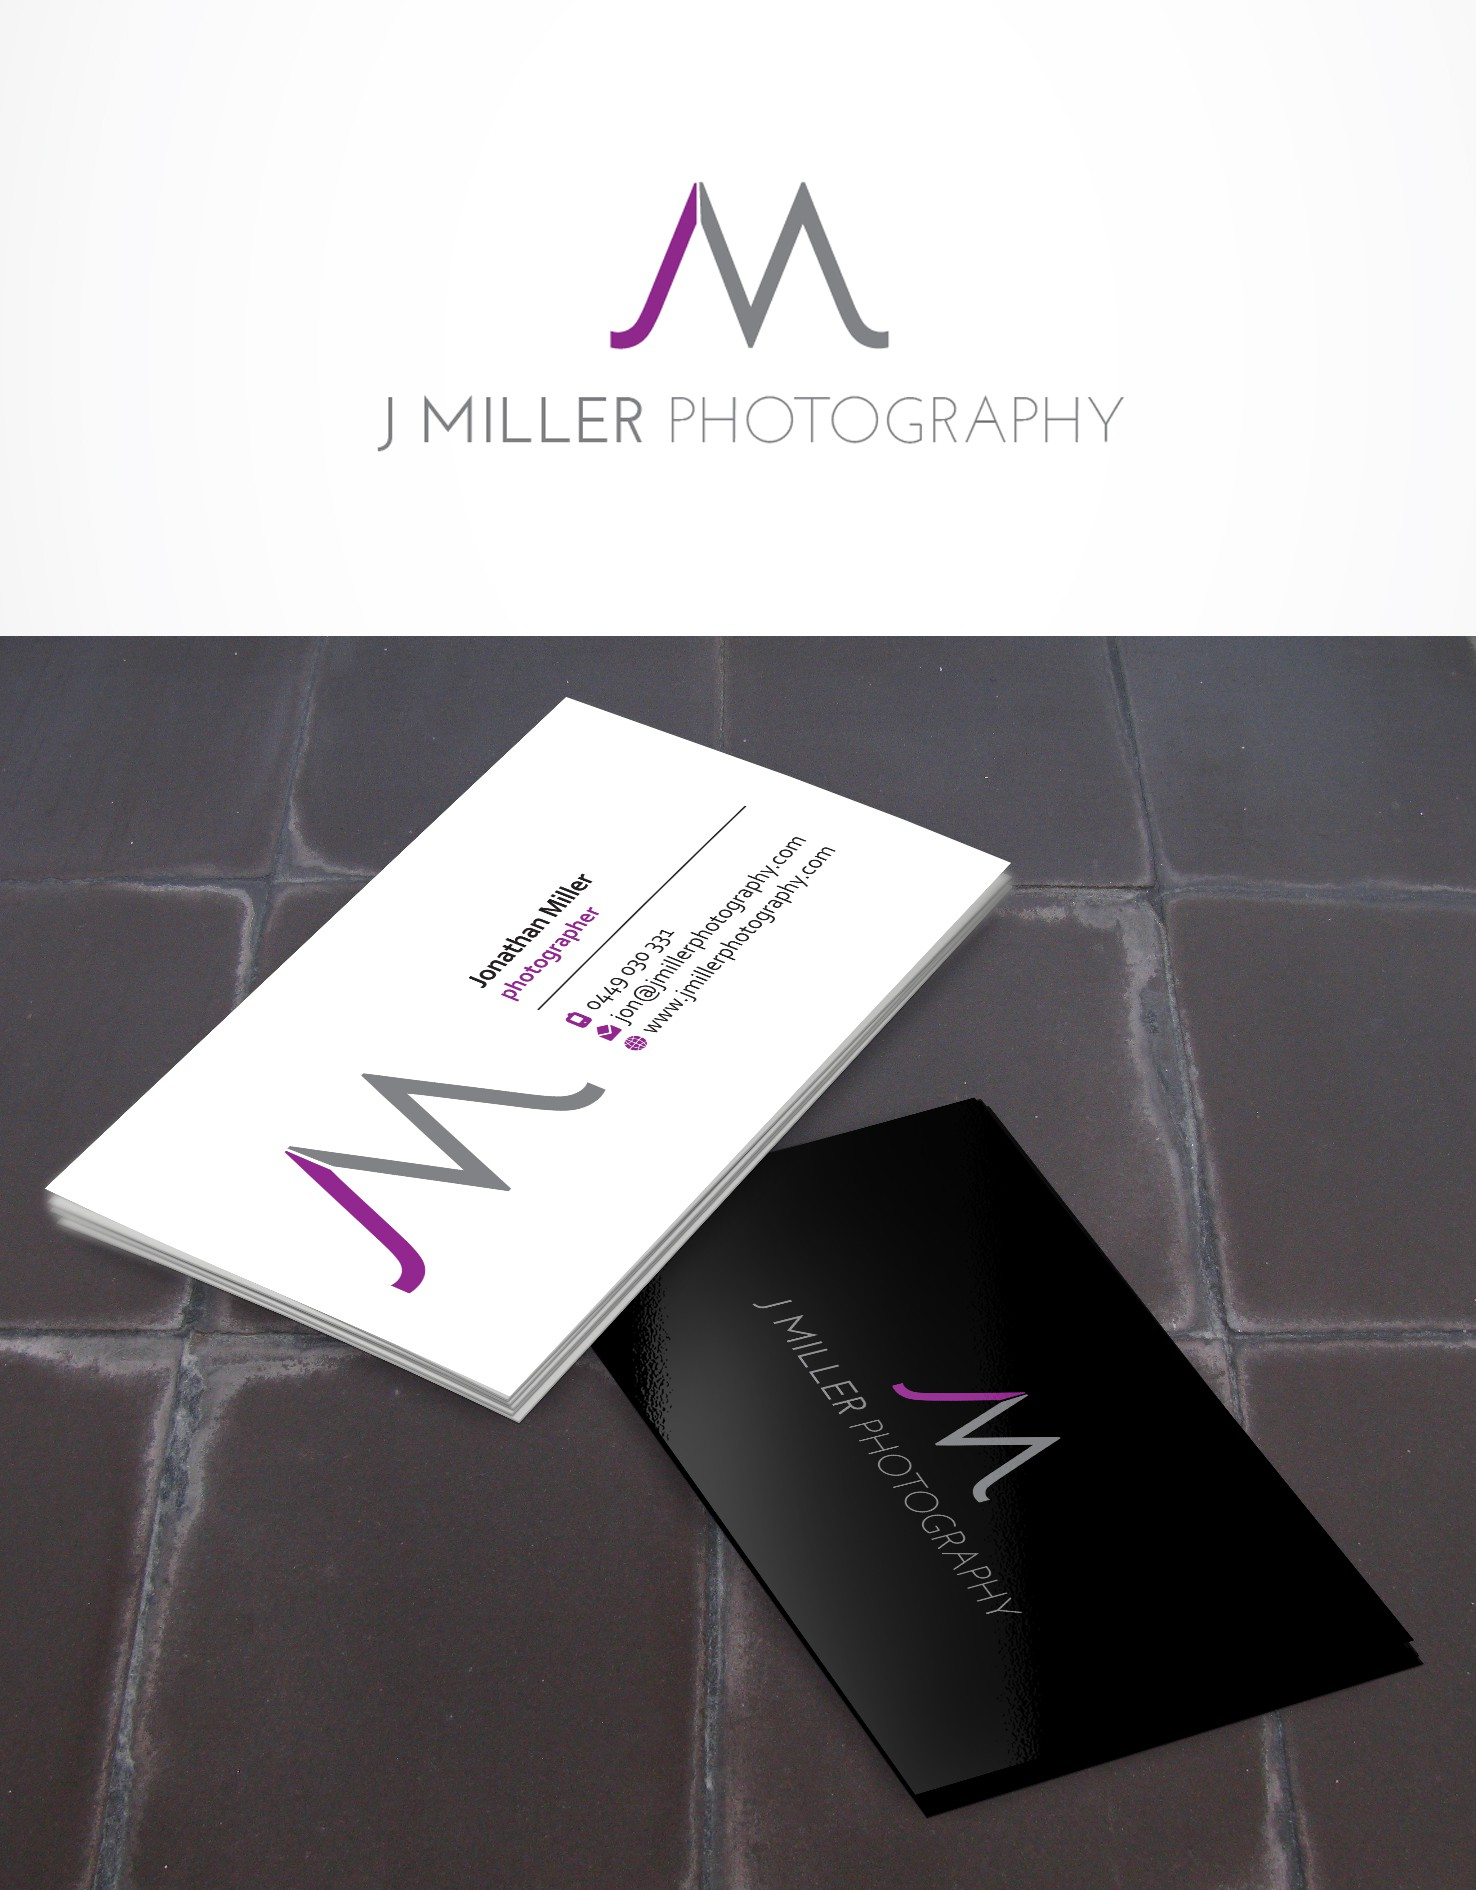 Create the next logo and business card for J Miller Photography